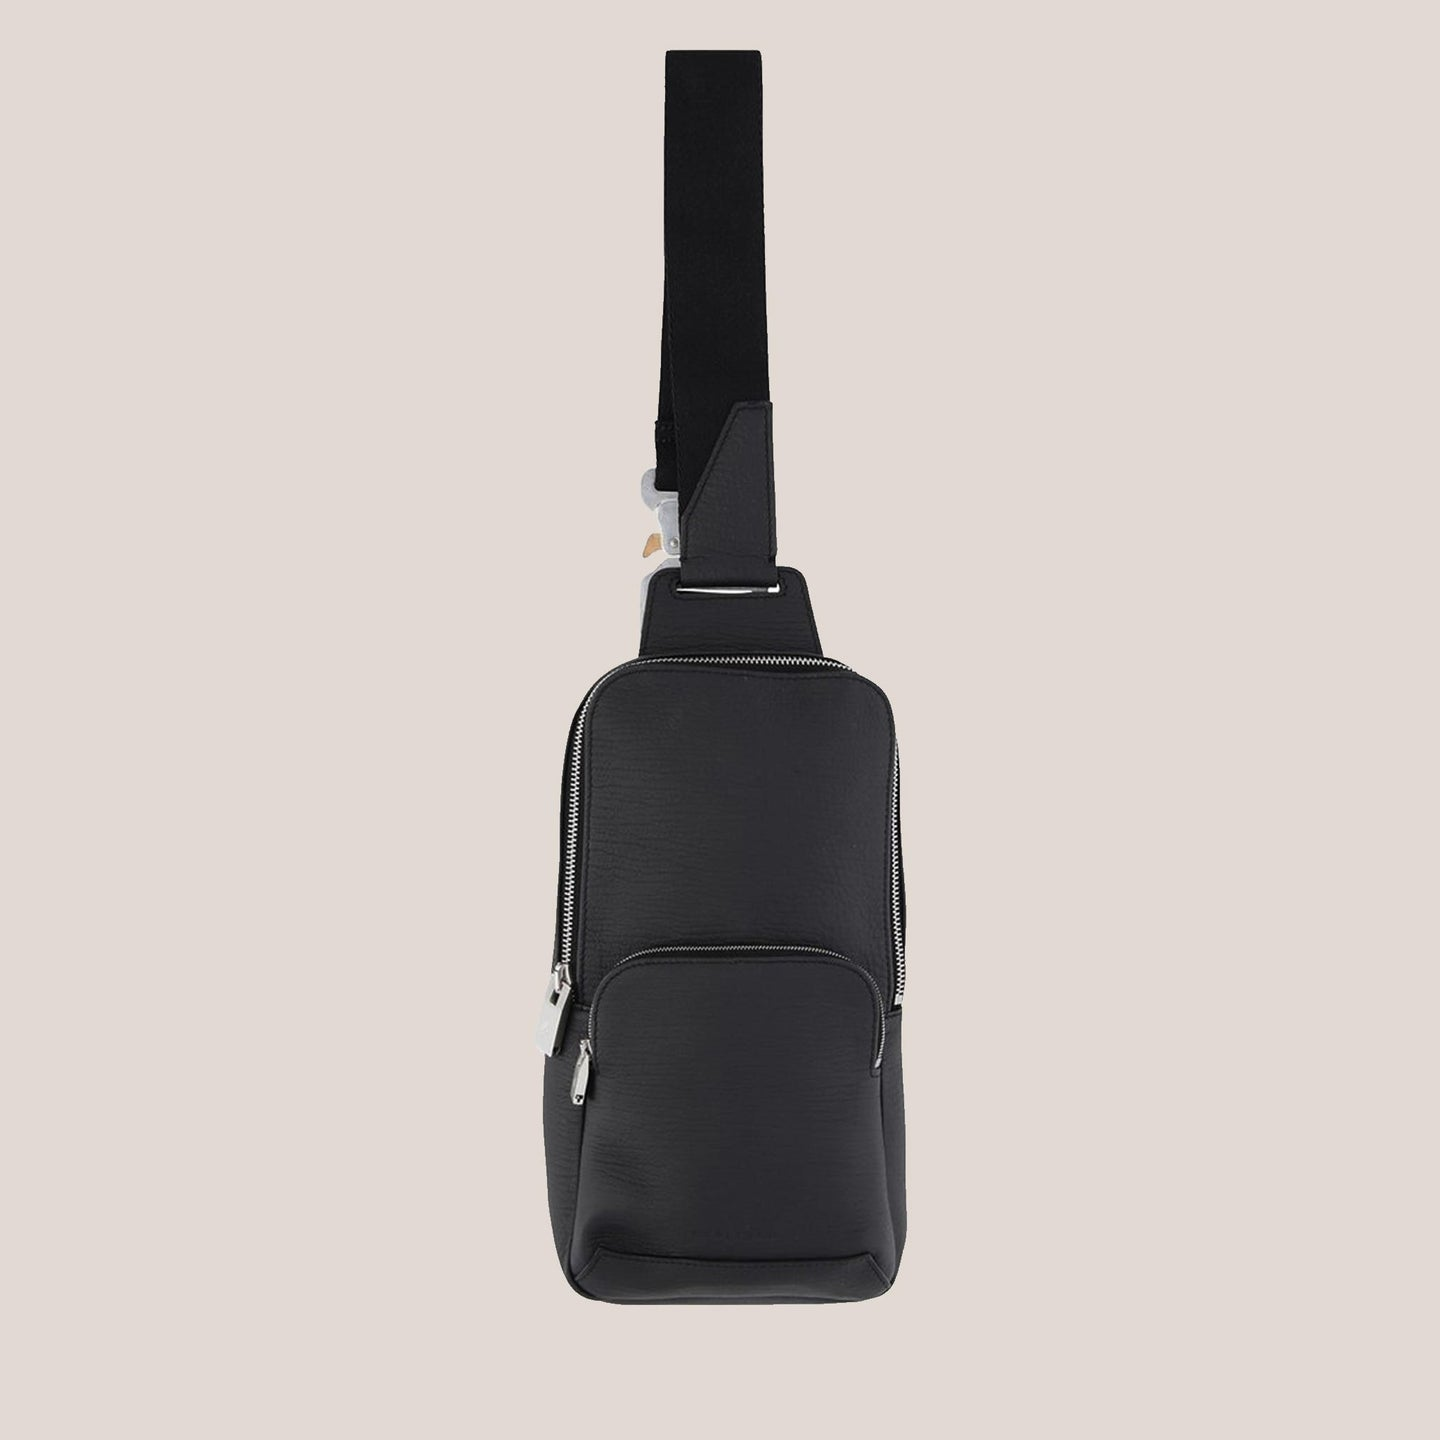 1017 Alyx 9SM - Small Crossbody Bag in Black, front view, available at LCD.